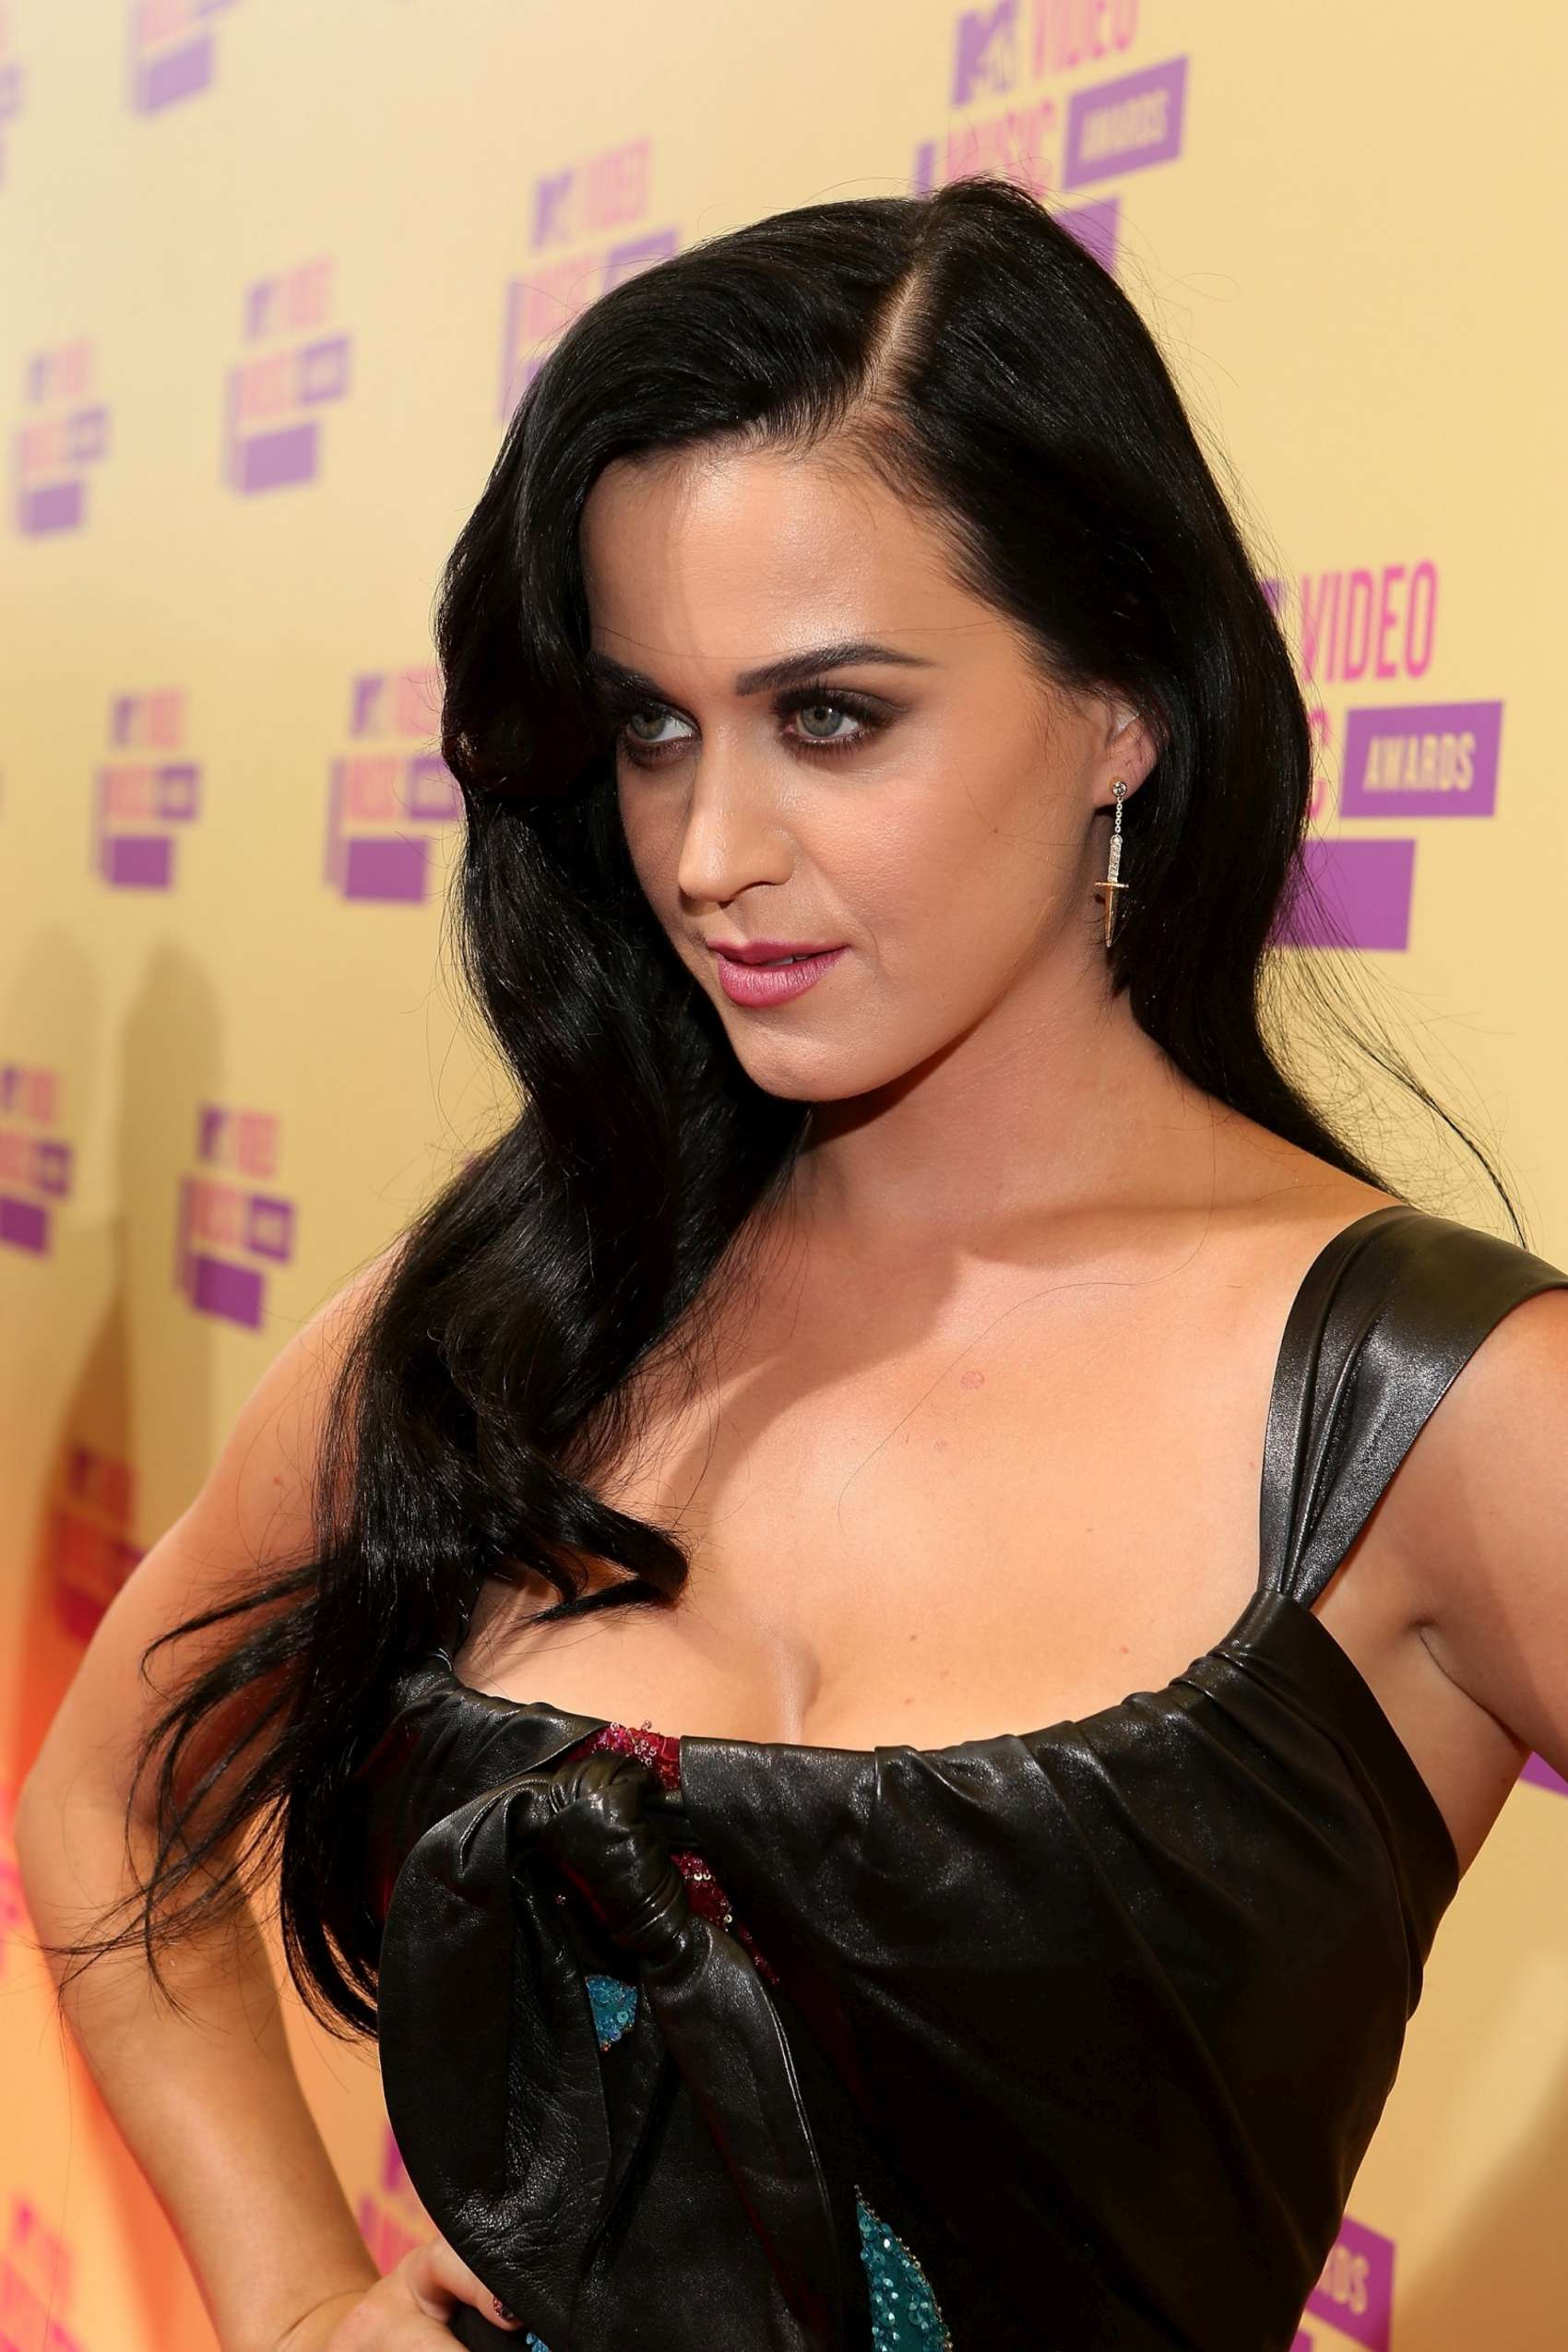 katy perry - photo #26